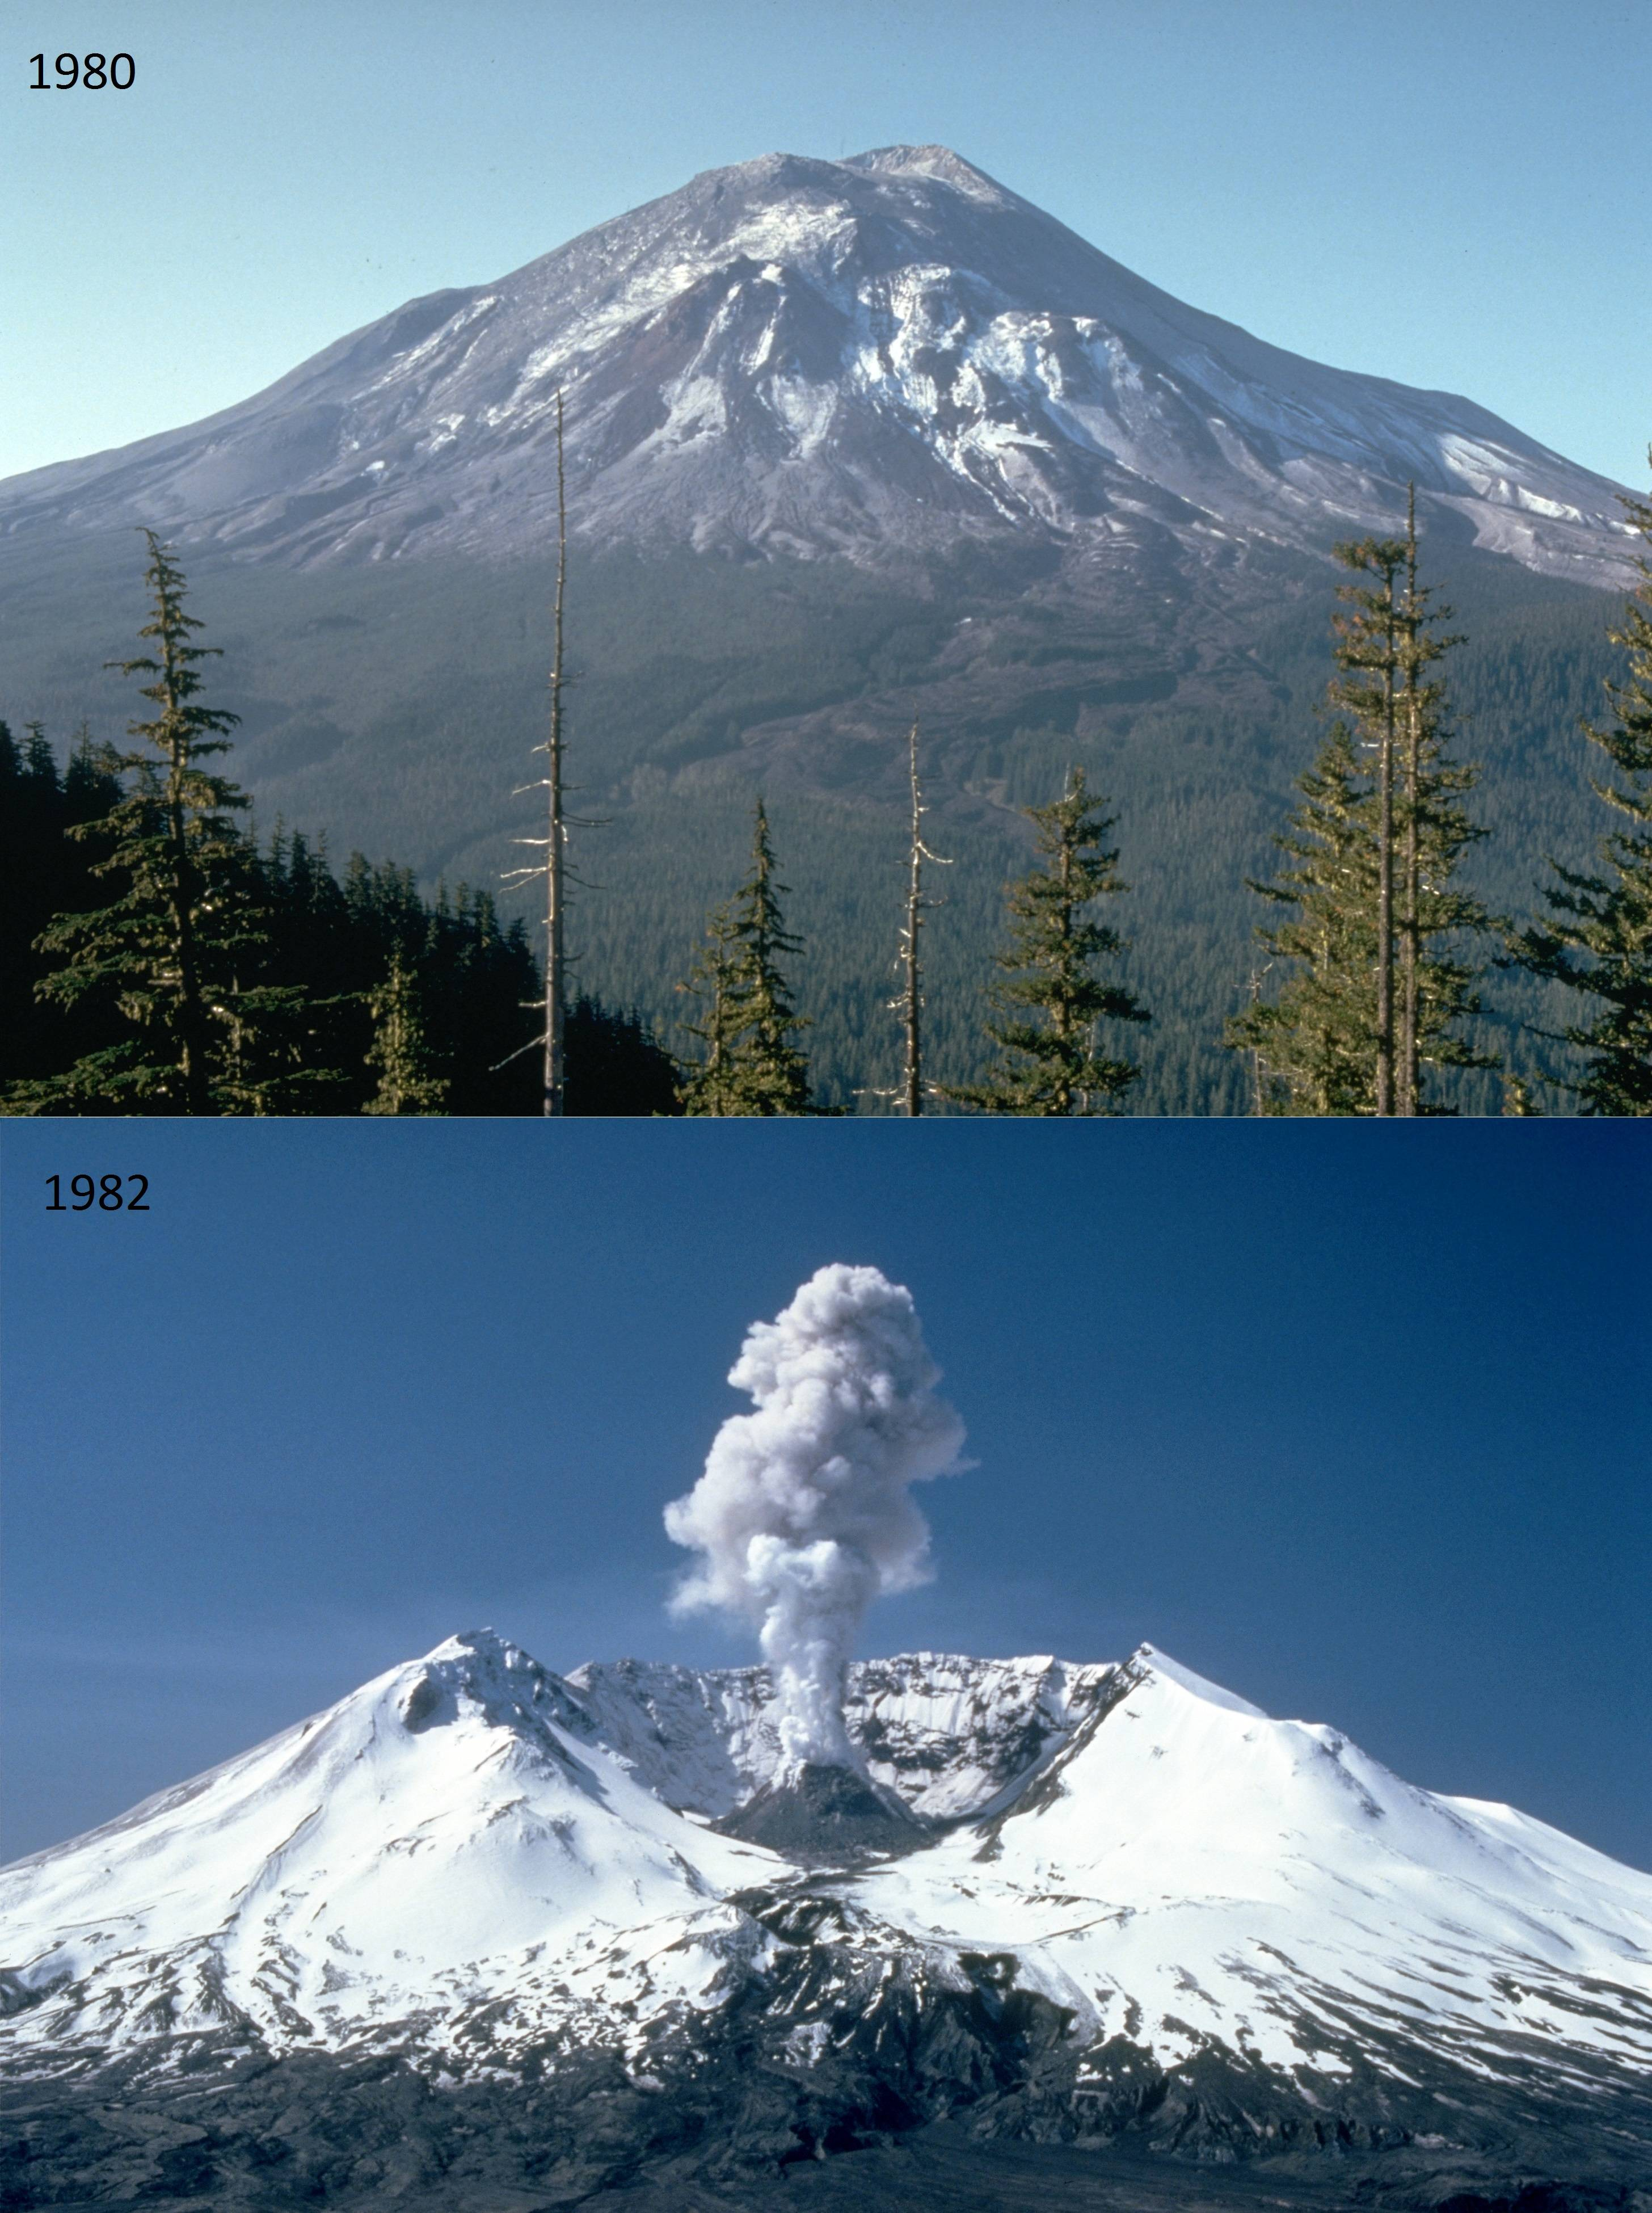 the country before and after the eruption of mount saint helen The eruption of mount st helens provided volcanologists with very useful datascientists tracked the volcano's activity before it erupted, for instance, and noted that the eruption came after a series of earthquakes, the largest of which was a magnitude 51 that struck directly beneath the volcano just minutes before it erupted.